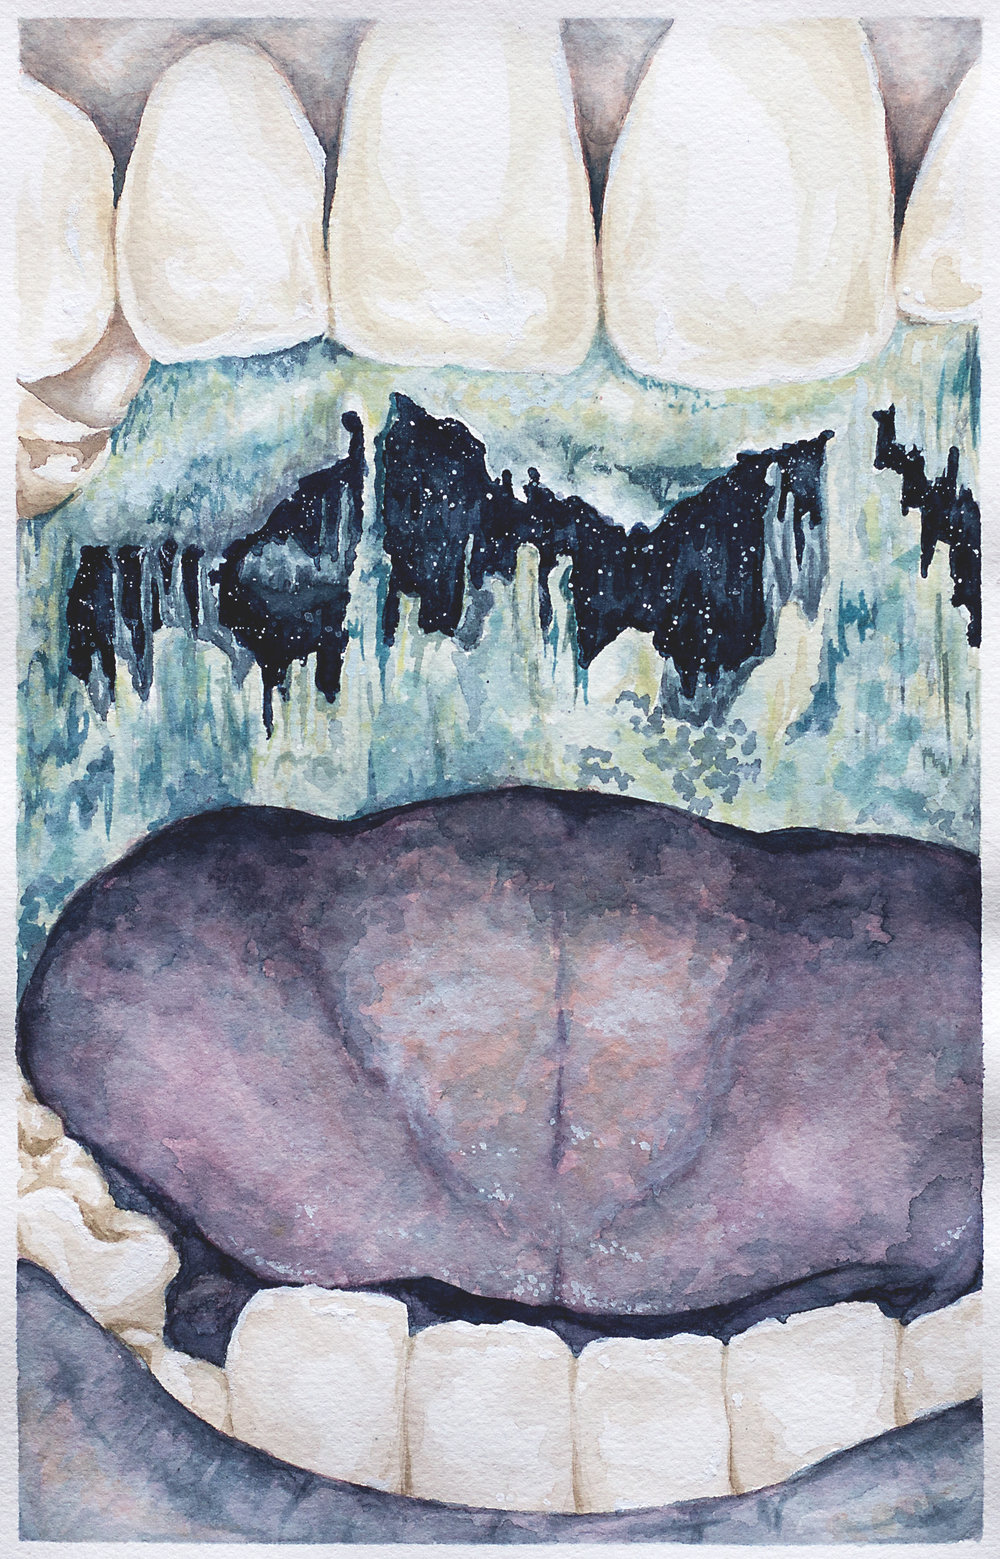 painting-stalactite mouth.jpg